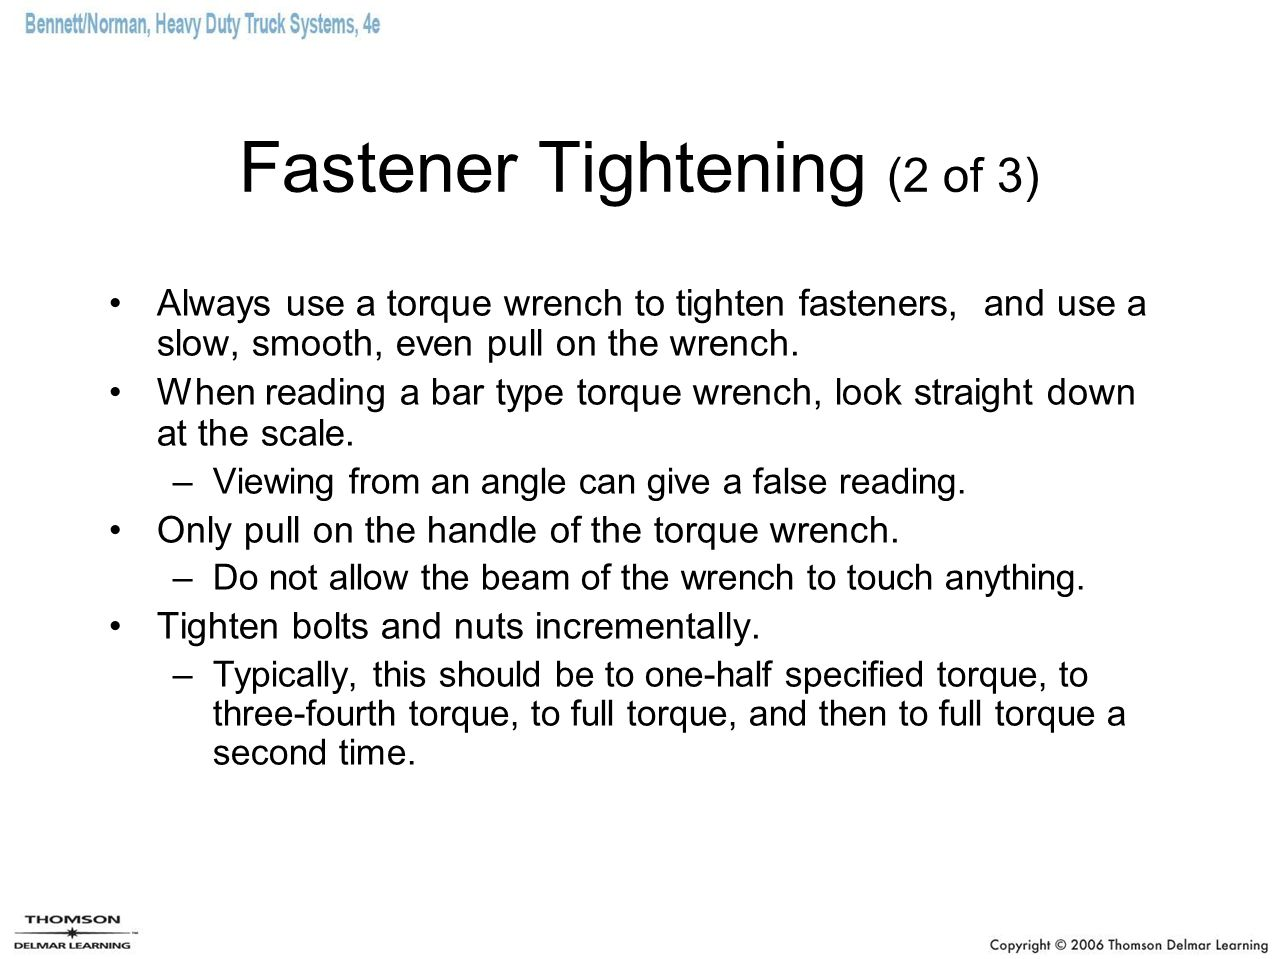 Fastener Tightening (2 of 3)